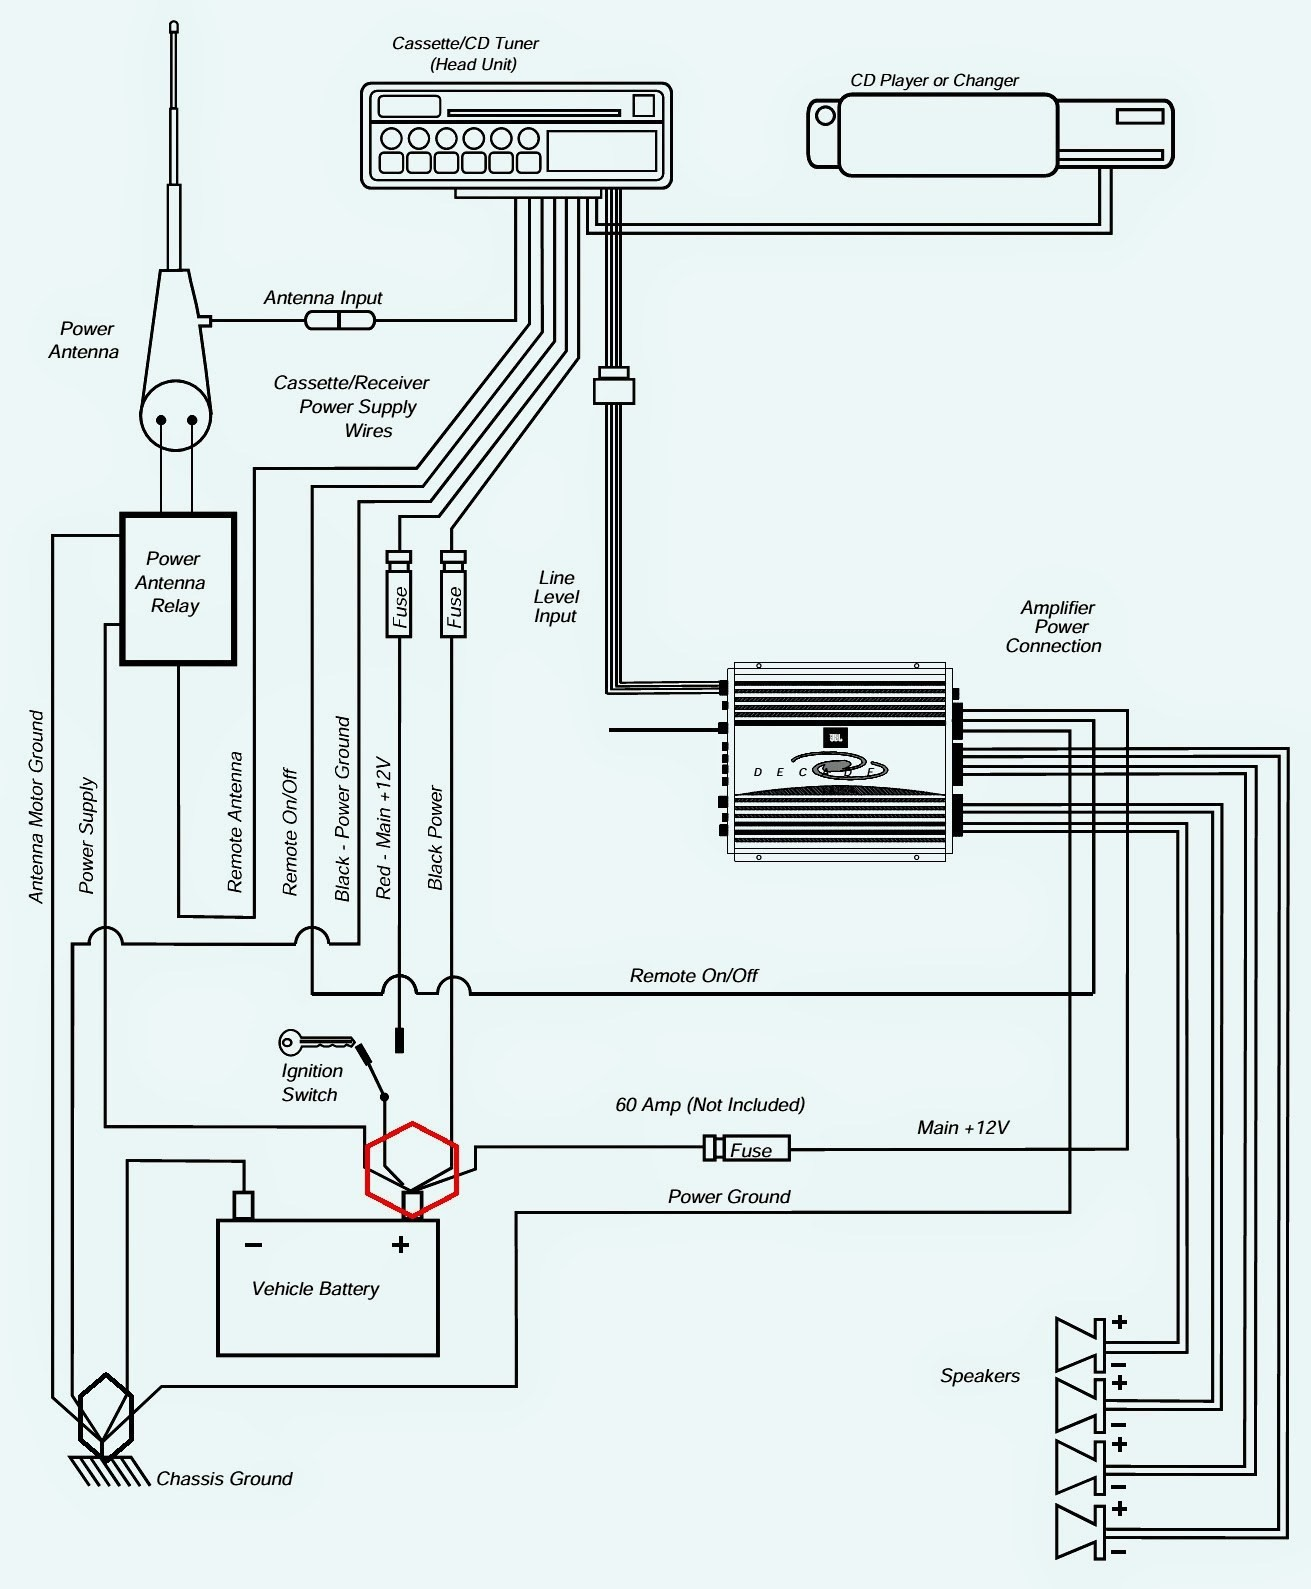 Diagram Of Under A Car Car Radio Connections Wiring Diagram Rate Wiring Diagram Car Stereo Of Diagram Of Under A Car